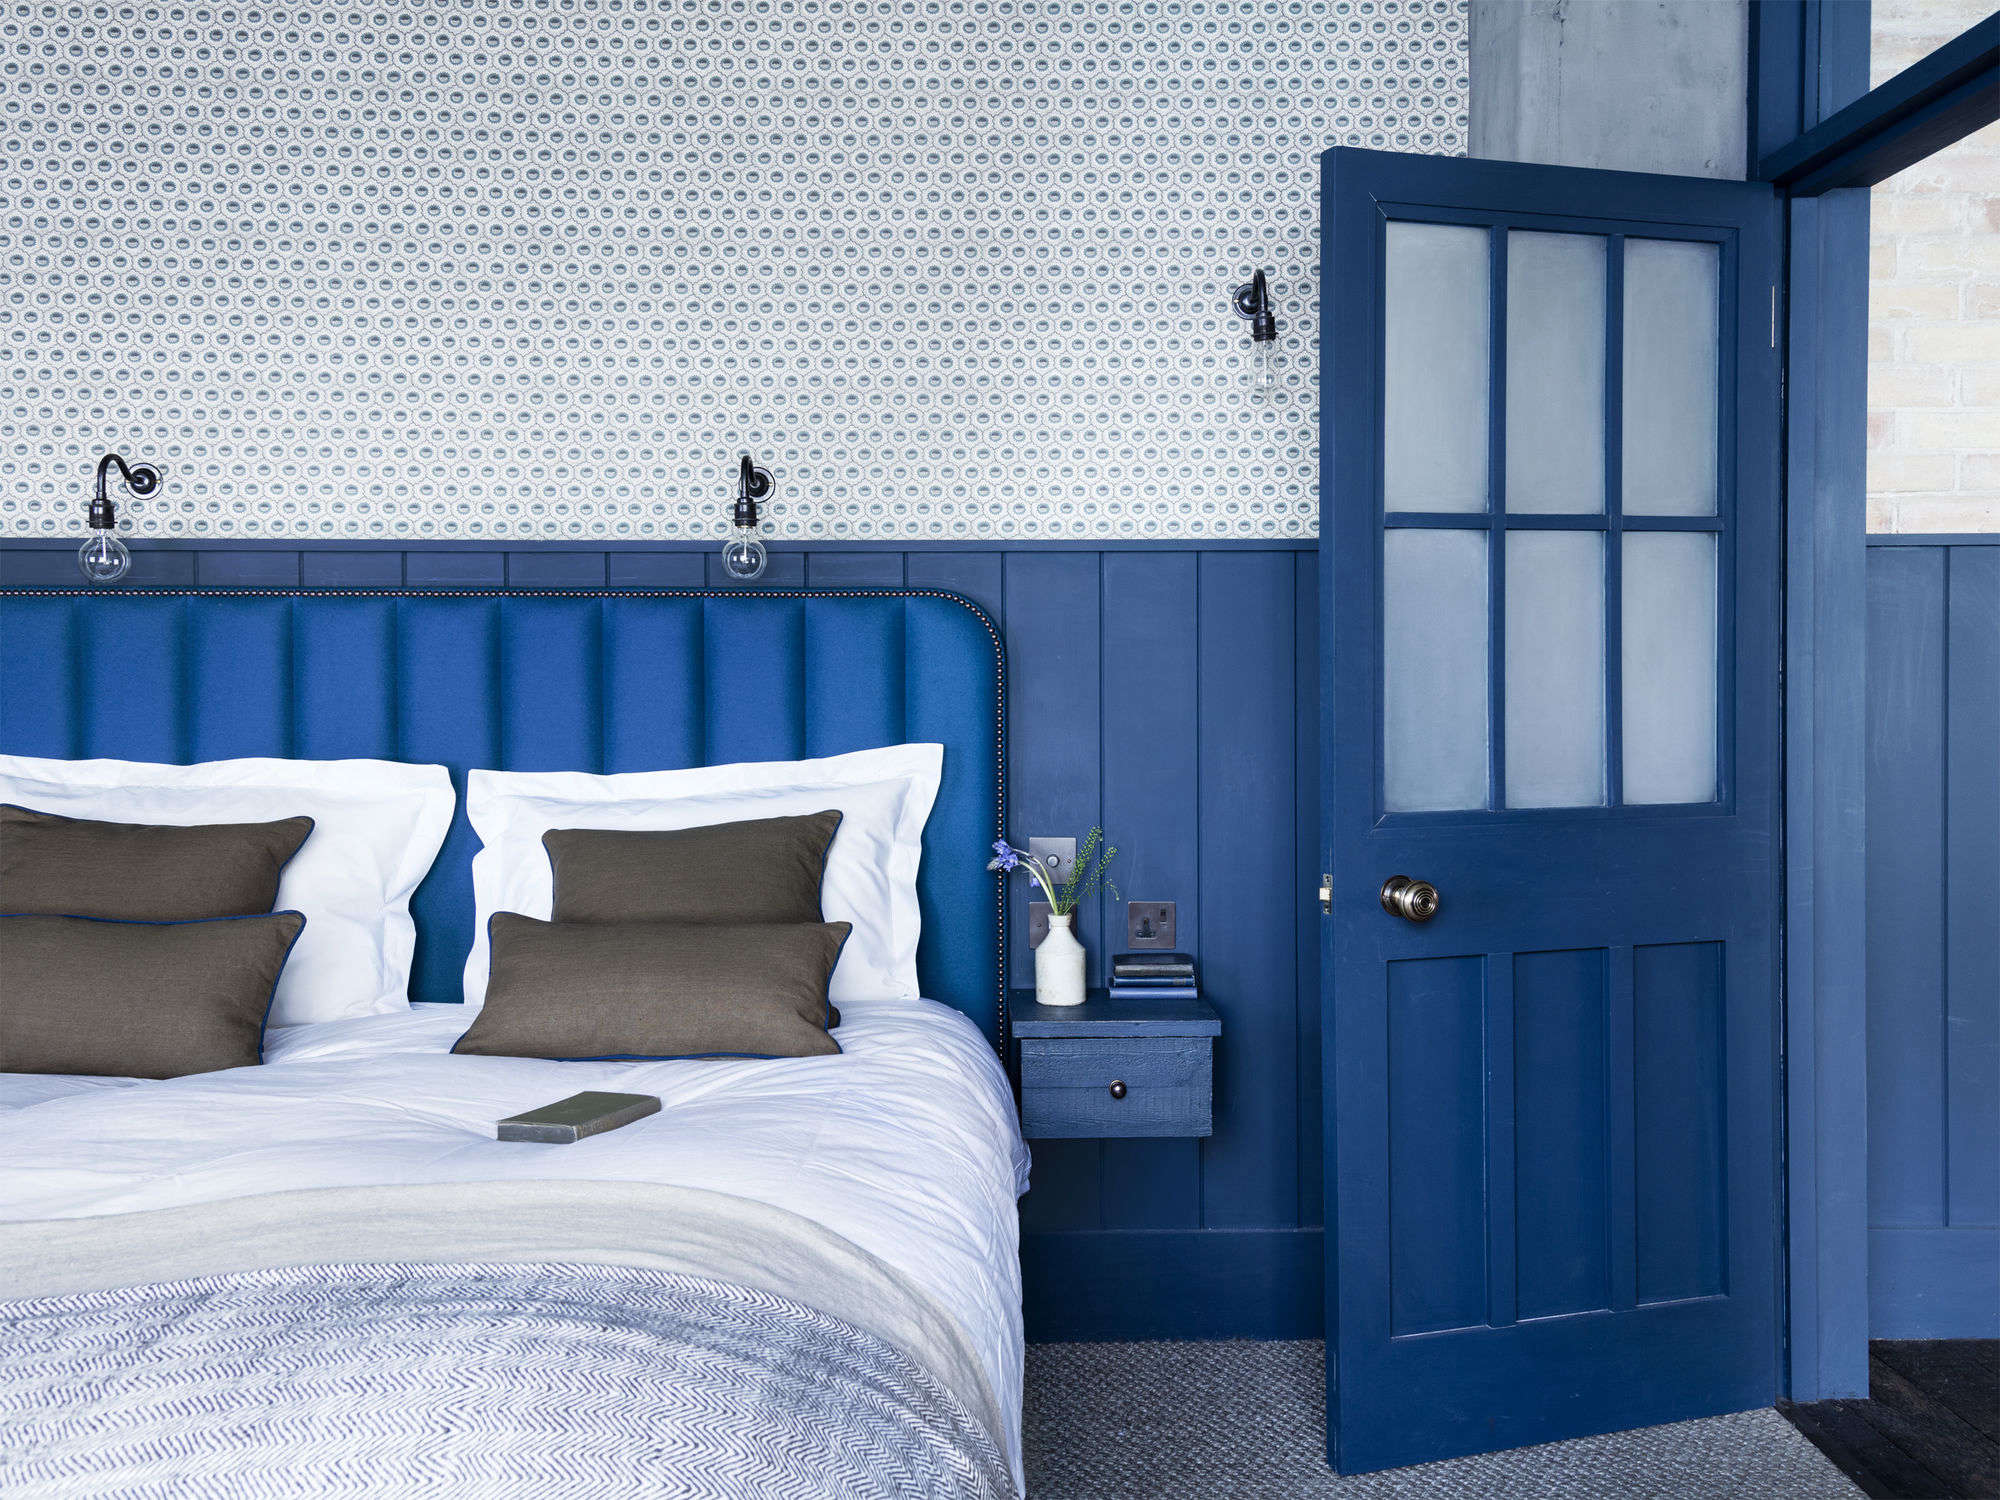 Steal This Look: A Bright Blue Bedroom in a London Loft - Remodelista